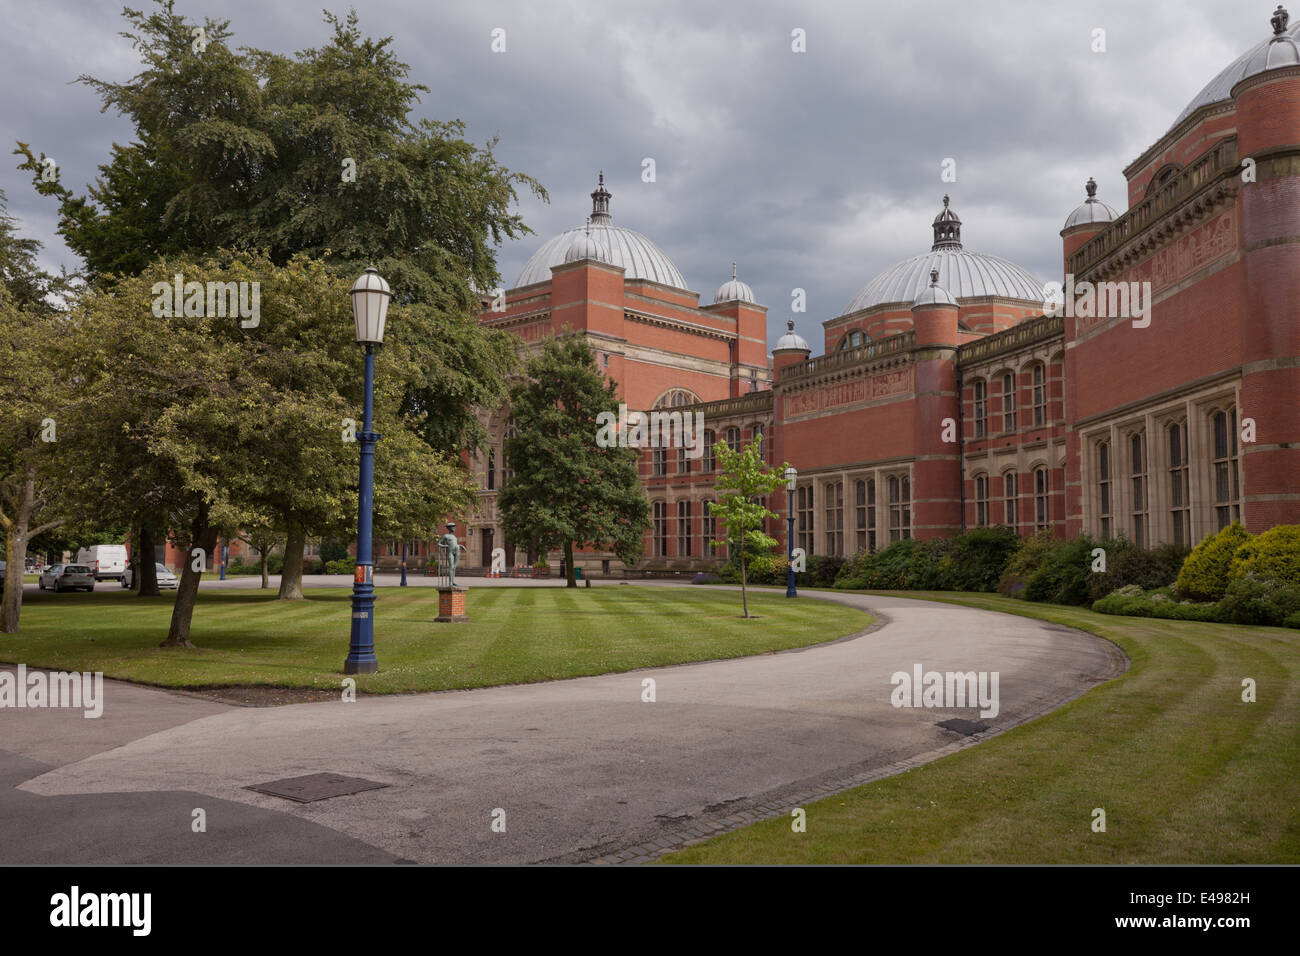 Wide view of Chancellor's Court, the University of Birmingham UK - Stock Image